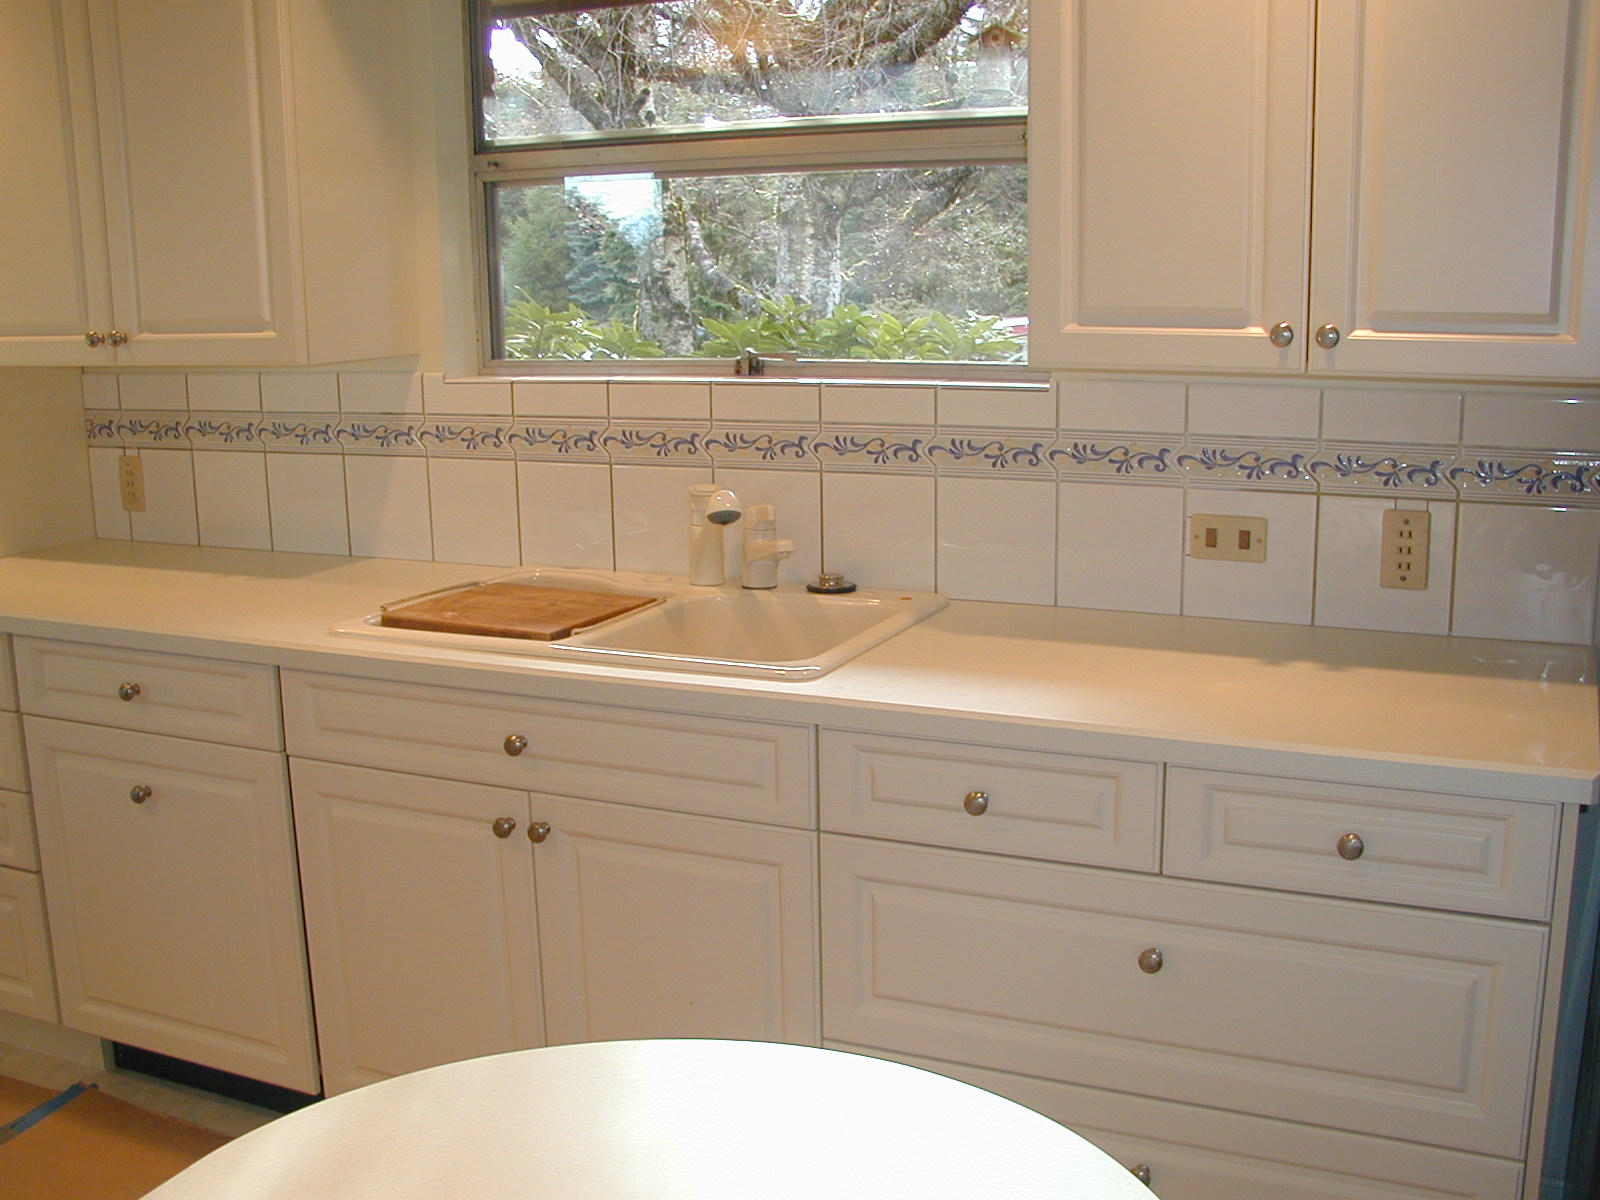 White Laminate Kitchen Countertops seattle countertop design portfolio